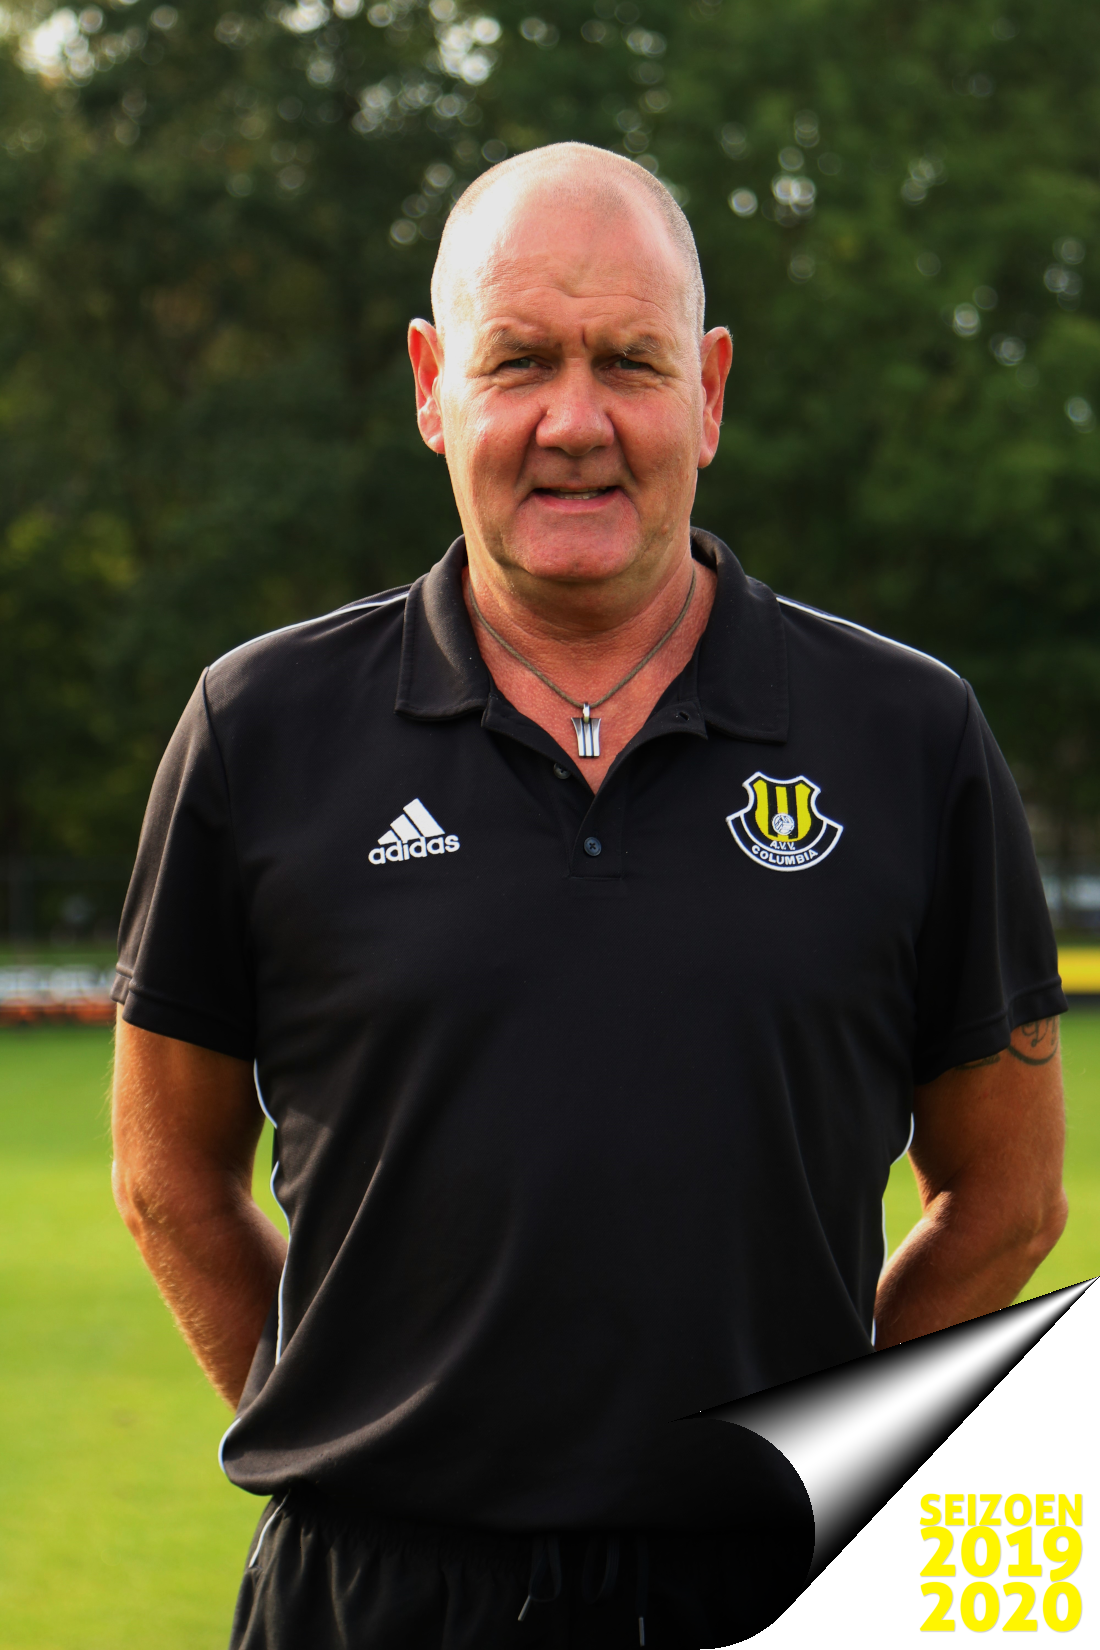 staf Jan van Veldhuizen (assistent-trainer)